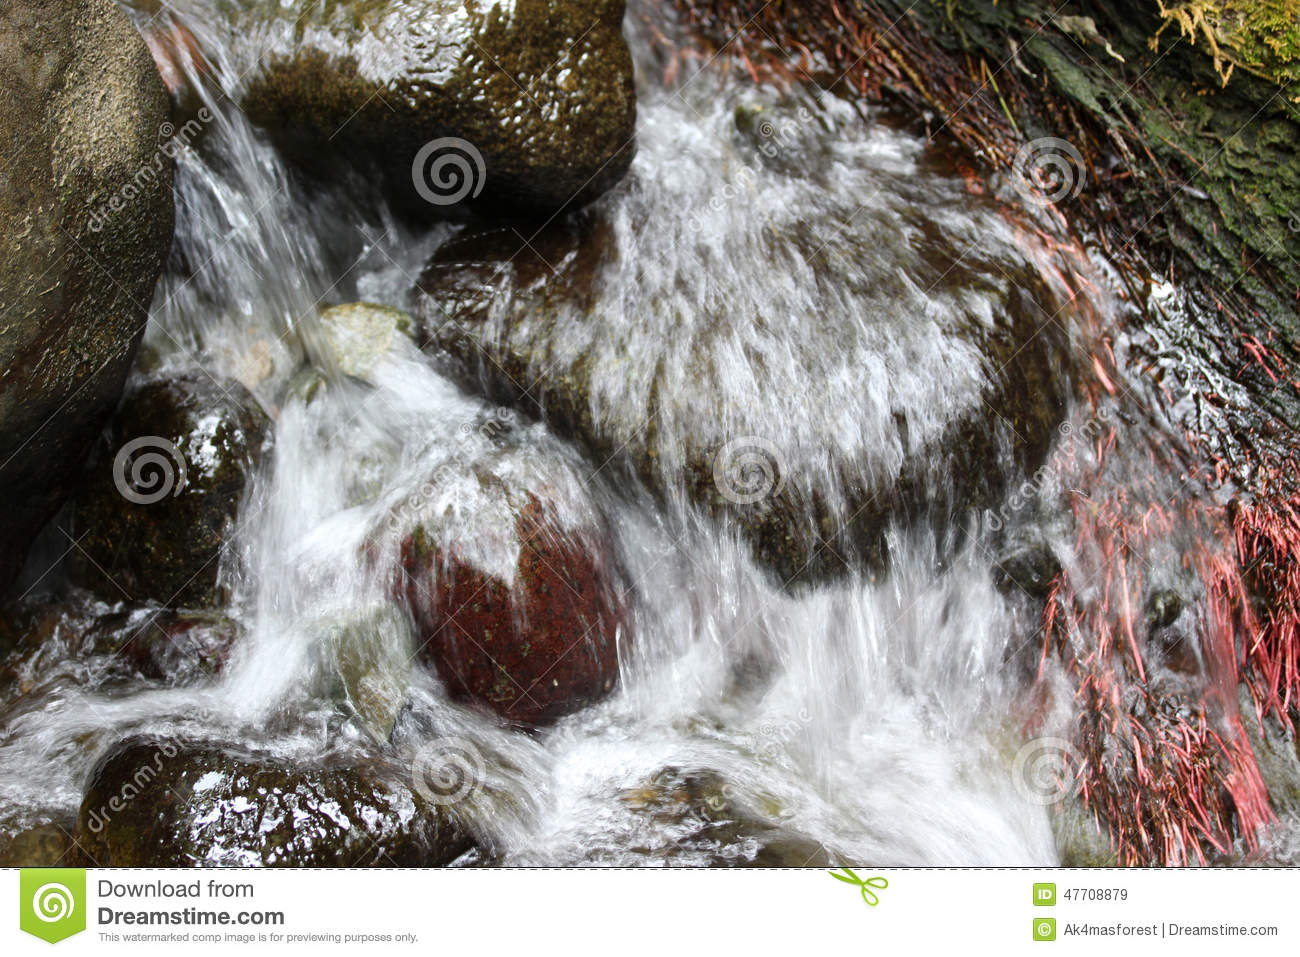 small waterfall on a creek small rocks and stones appear in the